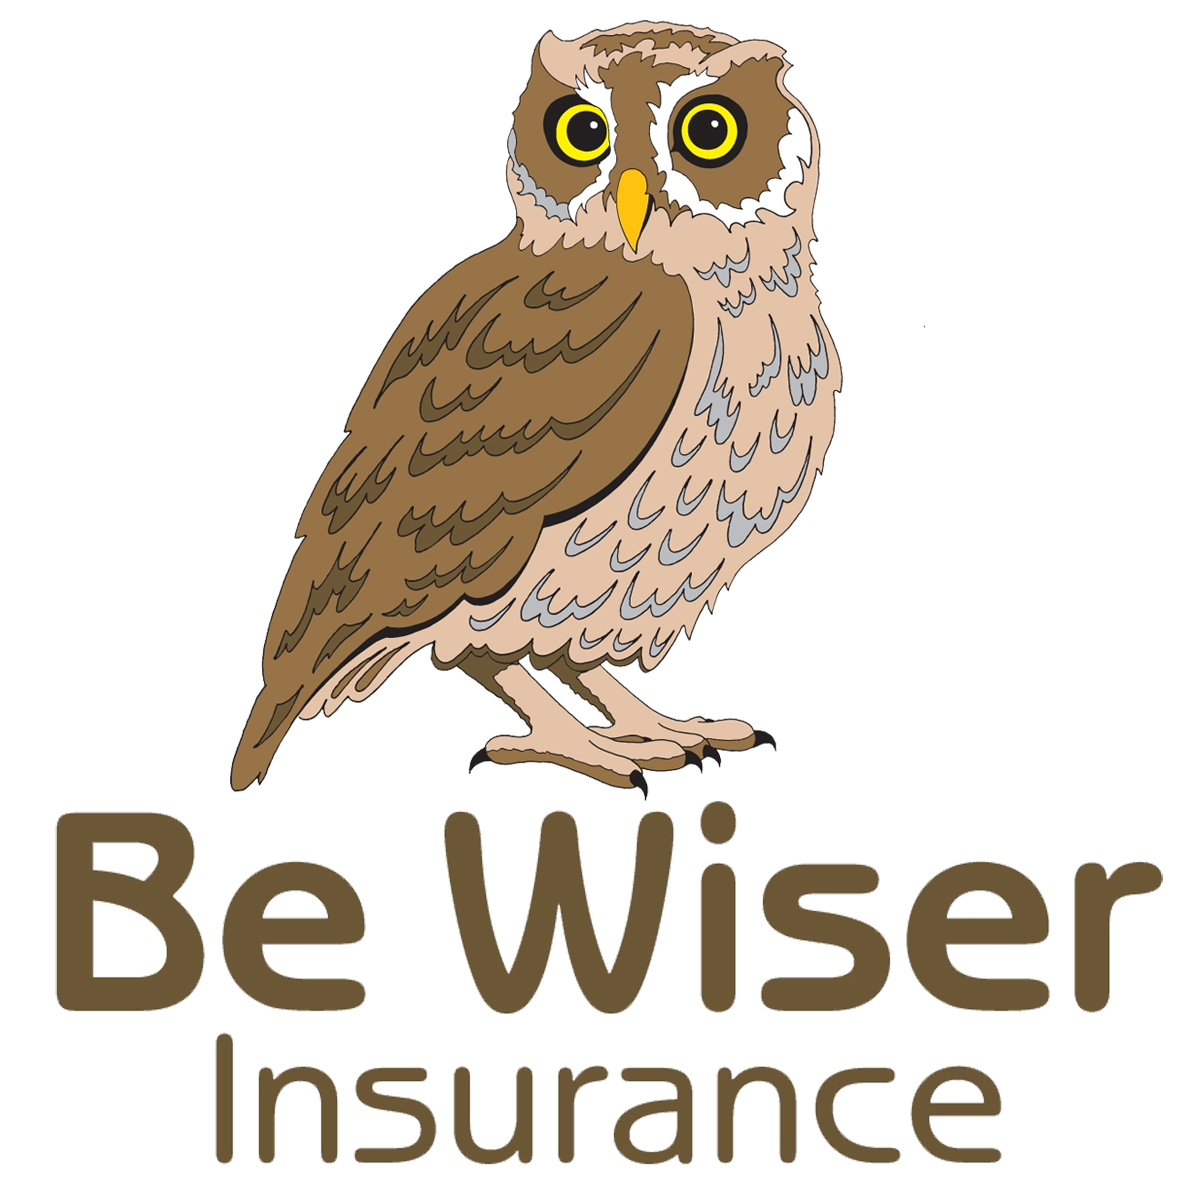 Be Wiser Progress Review V2.0